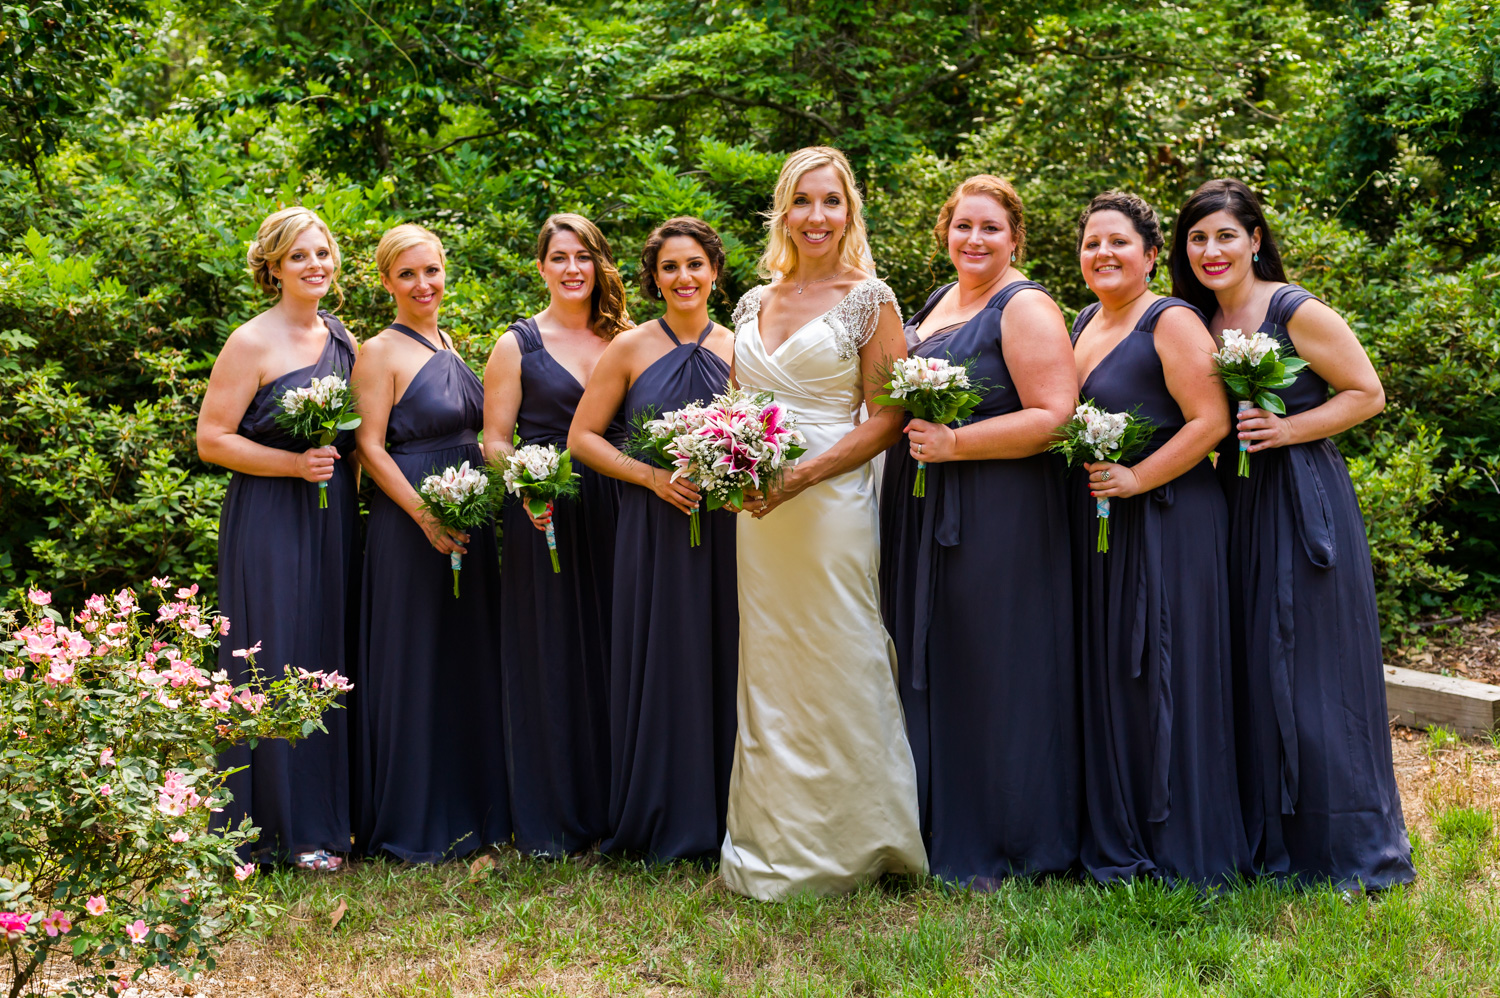 BridalPulse - An Outdoor Vineyard Wedding in NC By Rent My Wedding | bride with her bridesmaids